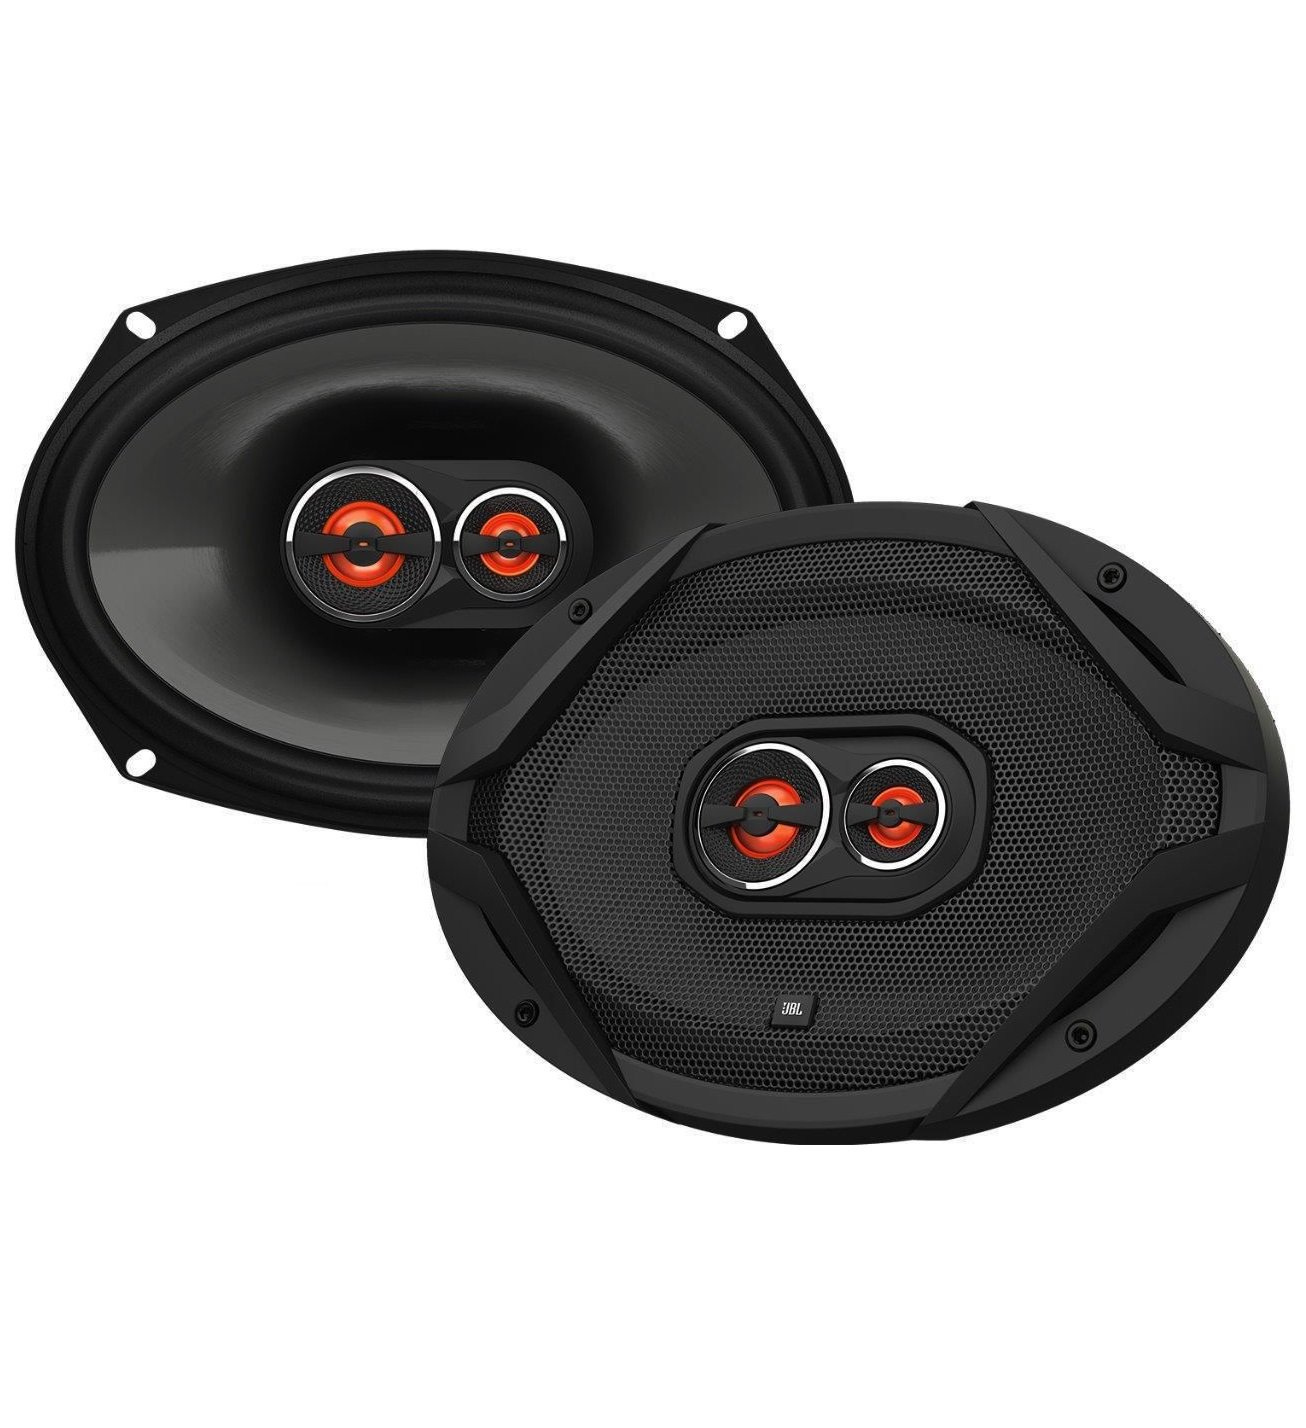 JBL GX602 180W 6.5 2-Way GX Series Coaxial Car Loudspeakers Certified Refurbished